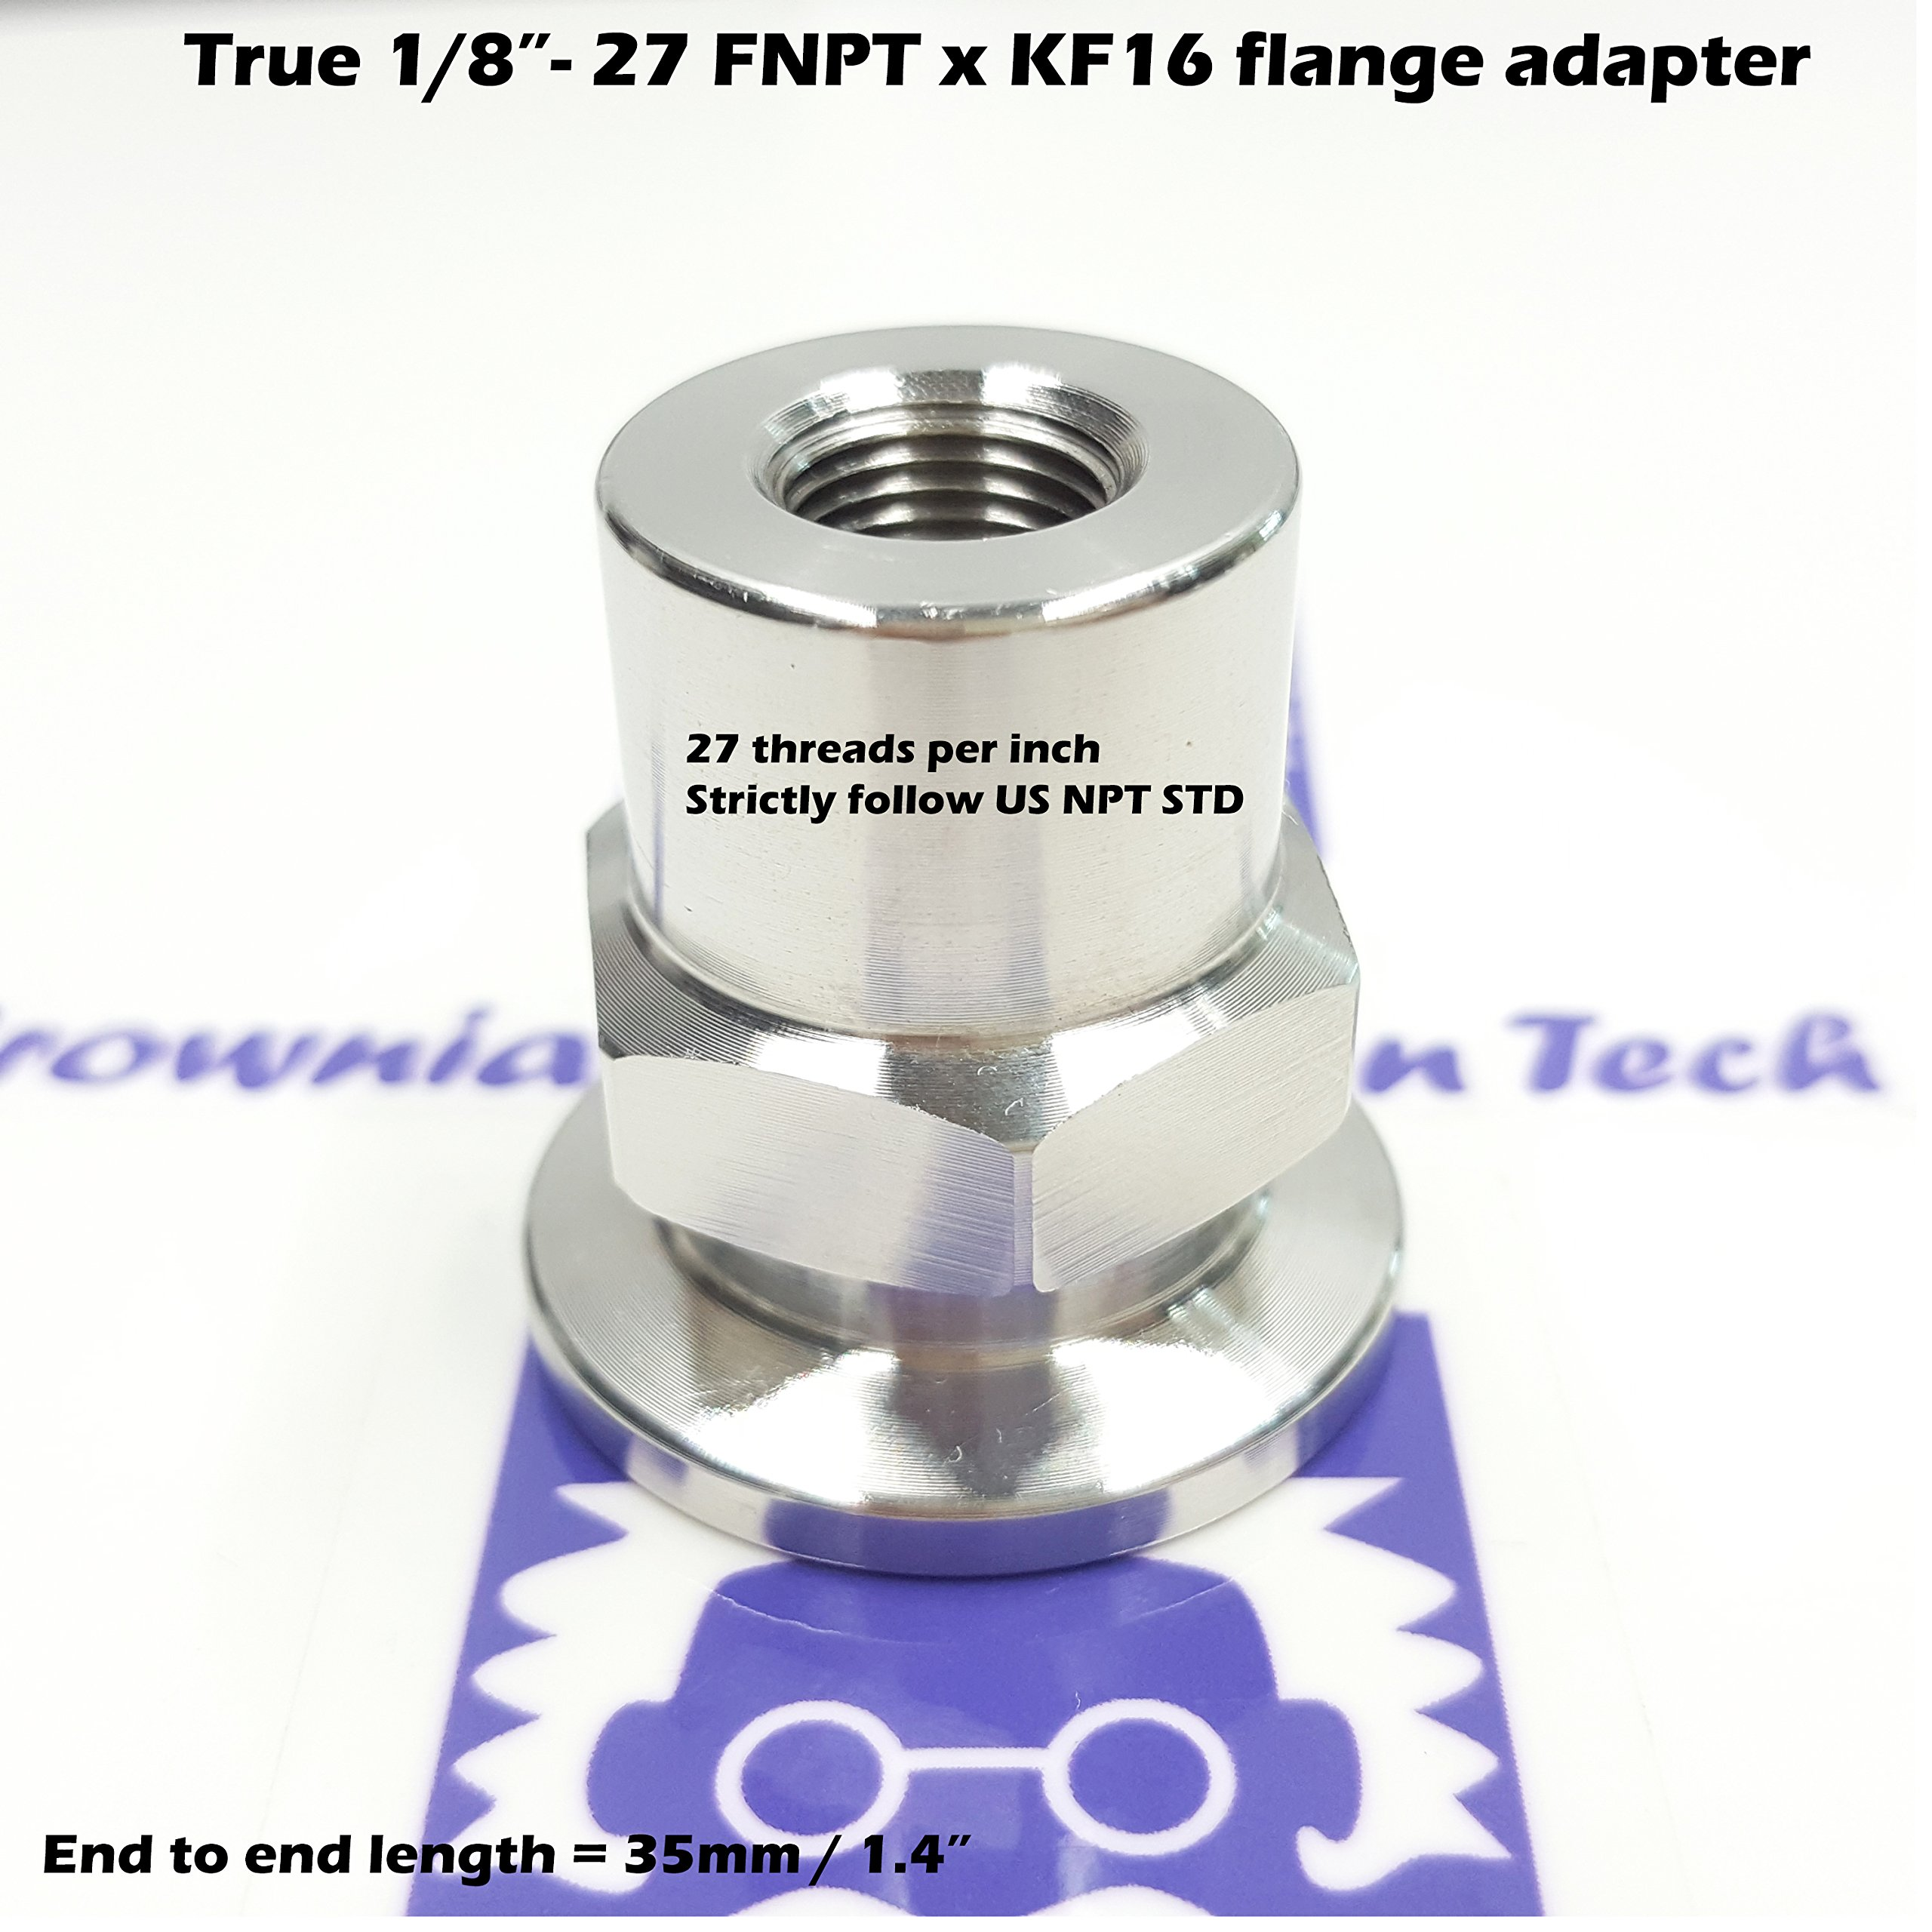 "_BMT_ True 1/8"" FNPT X KF16 Flange vacuum adapter, made of SS304, strictly follow NPT standard, 27 threads per inch, 60 degree thread angle"